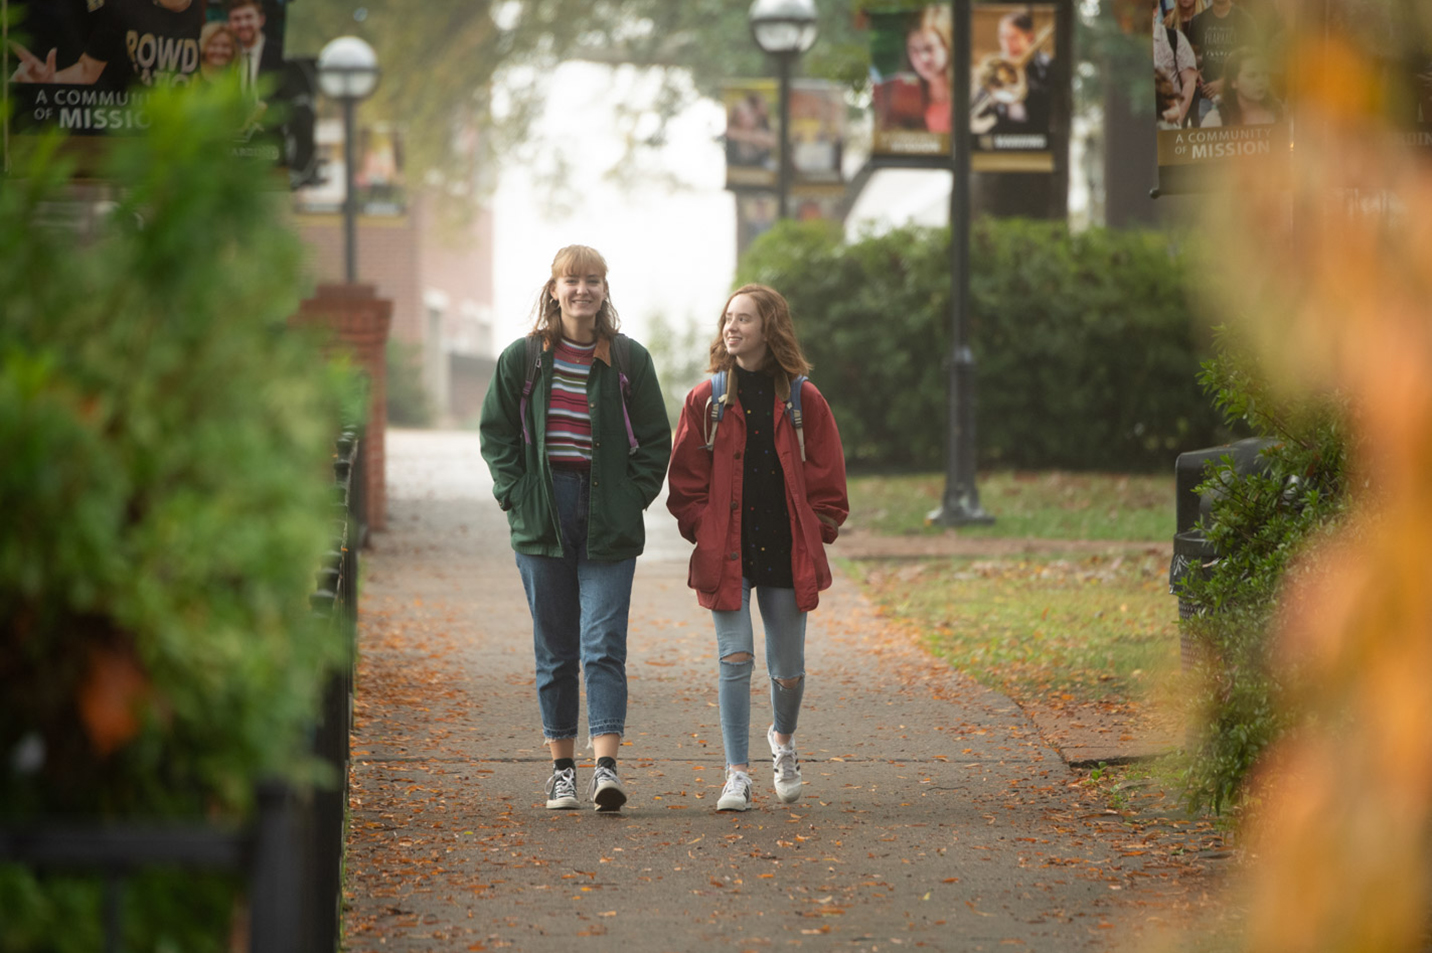 This is a photo of two students walking on campus.